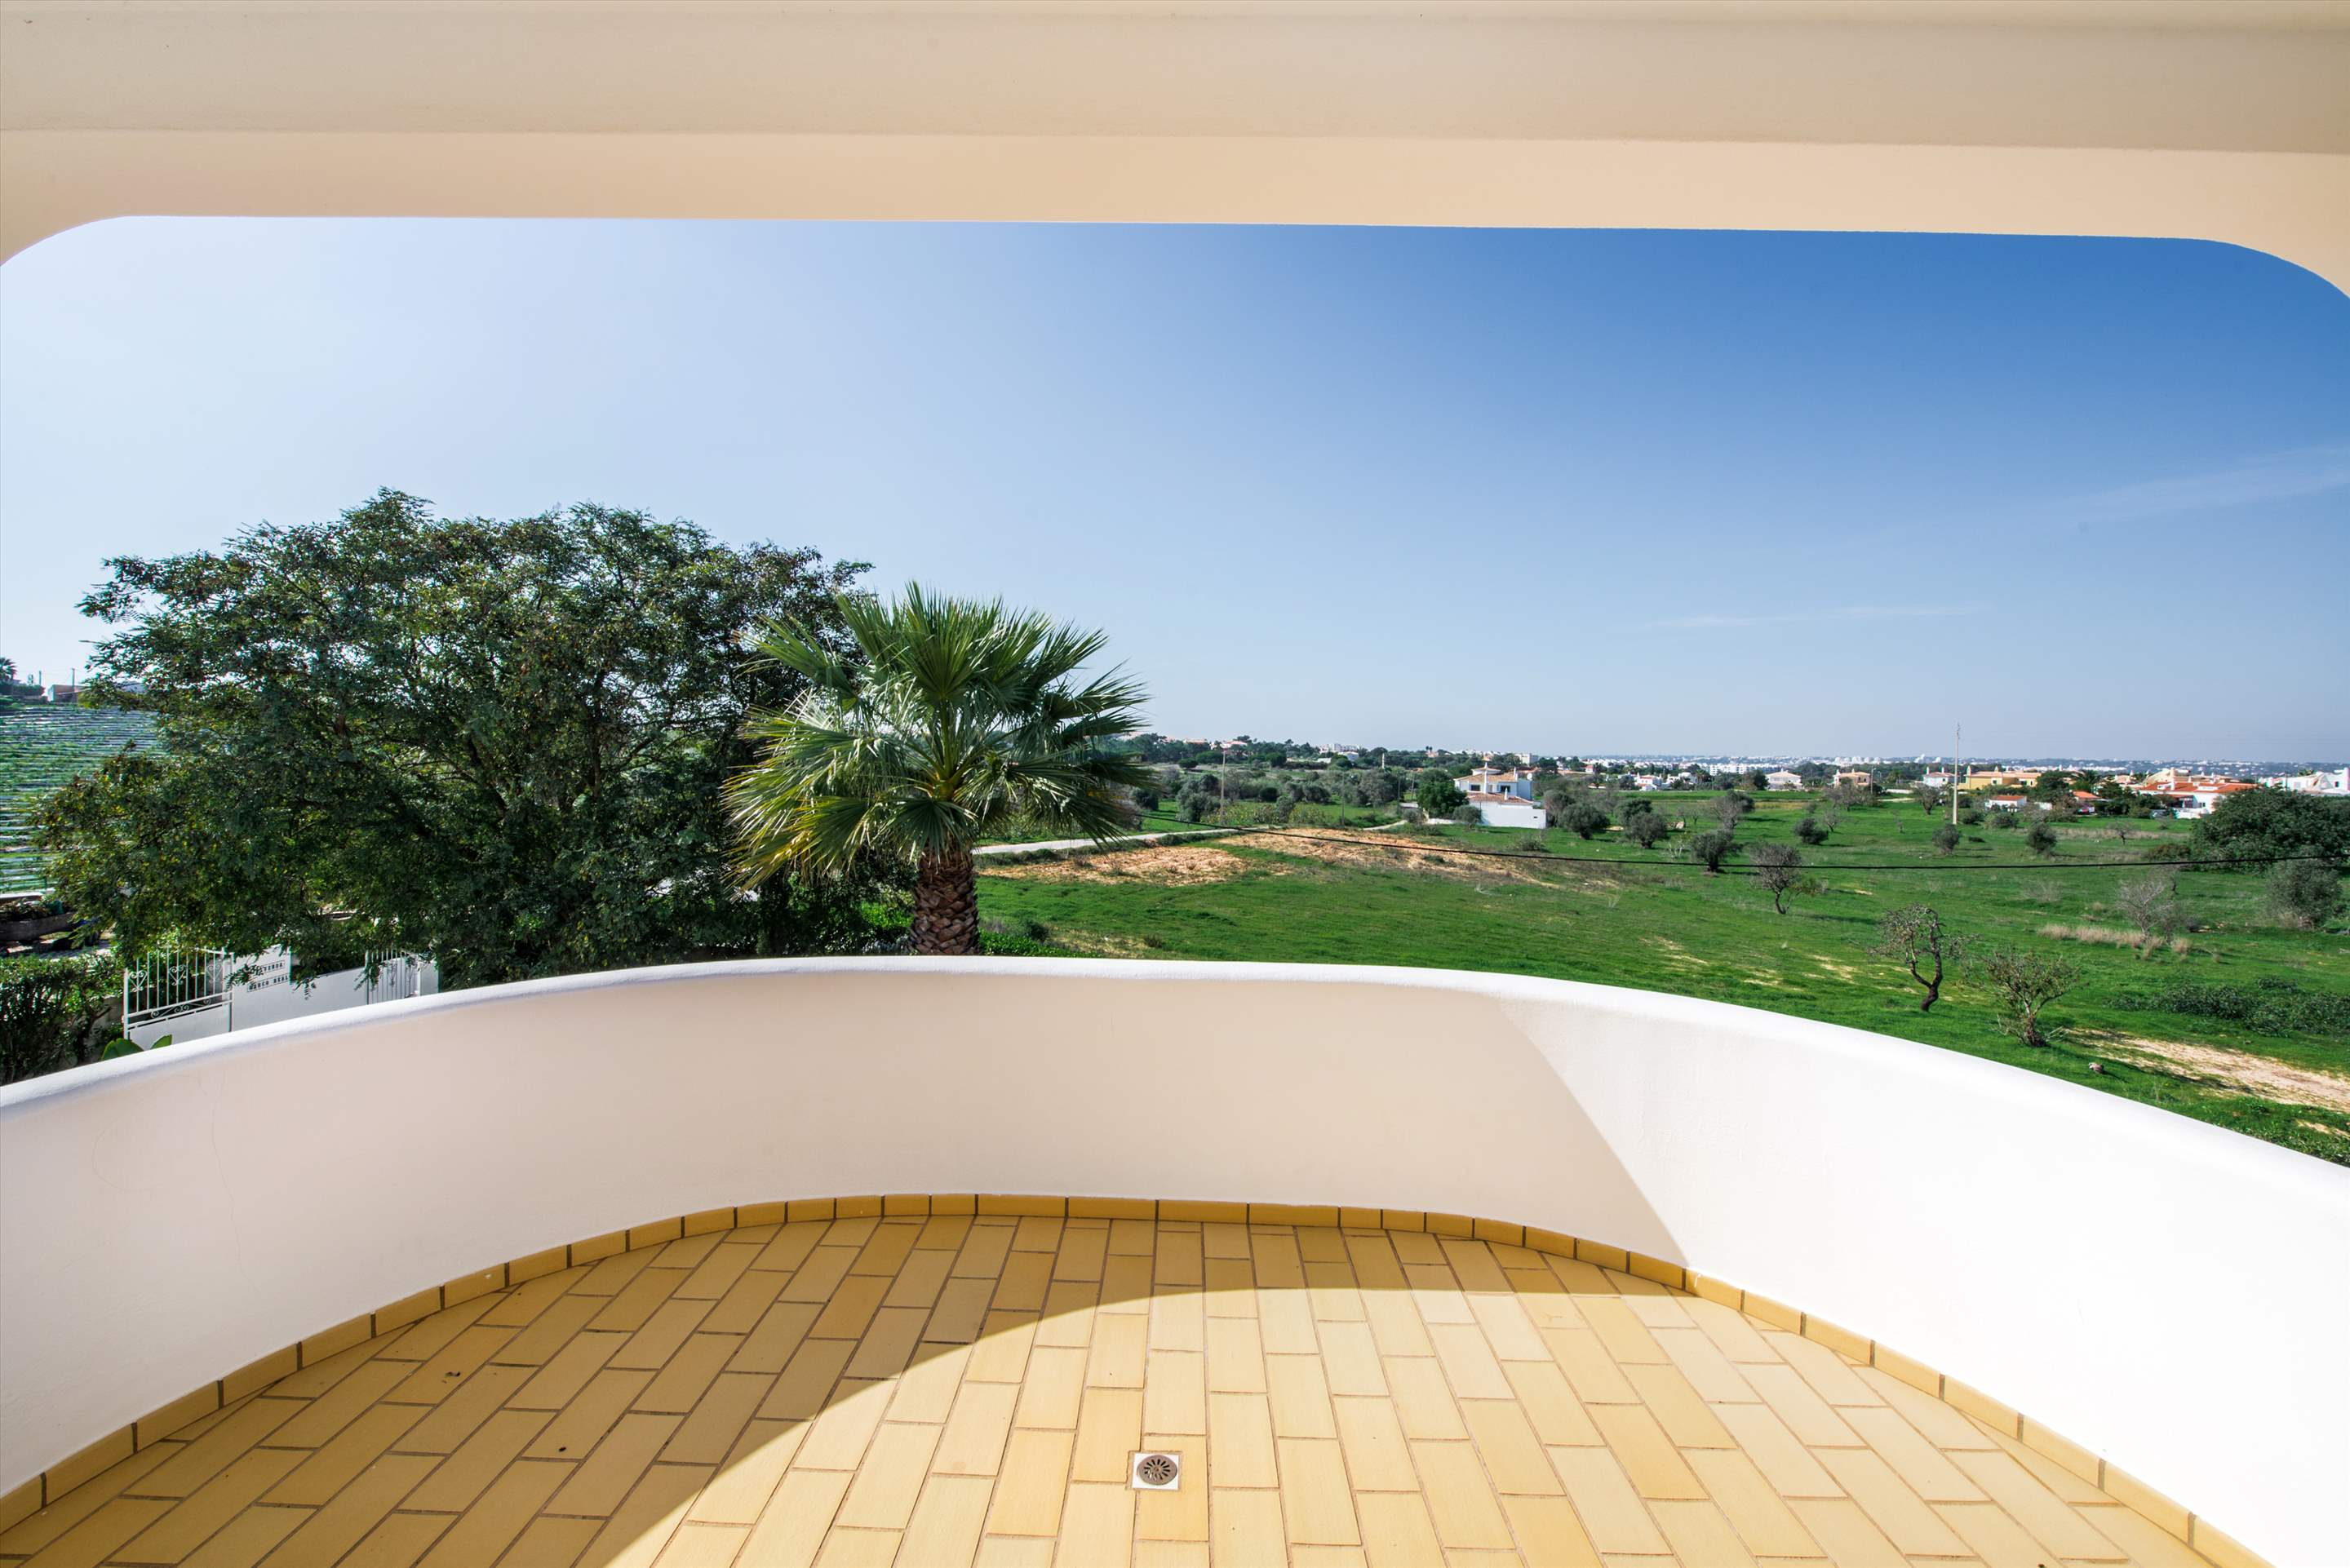 Villa Marco Real, 7-8 persons rate, 4 bedroom villa in Gale, Vale da Parra and Guia, Algarve Photo #25